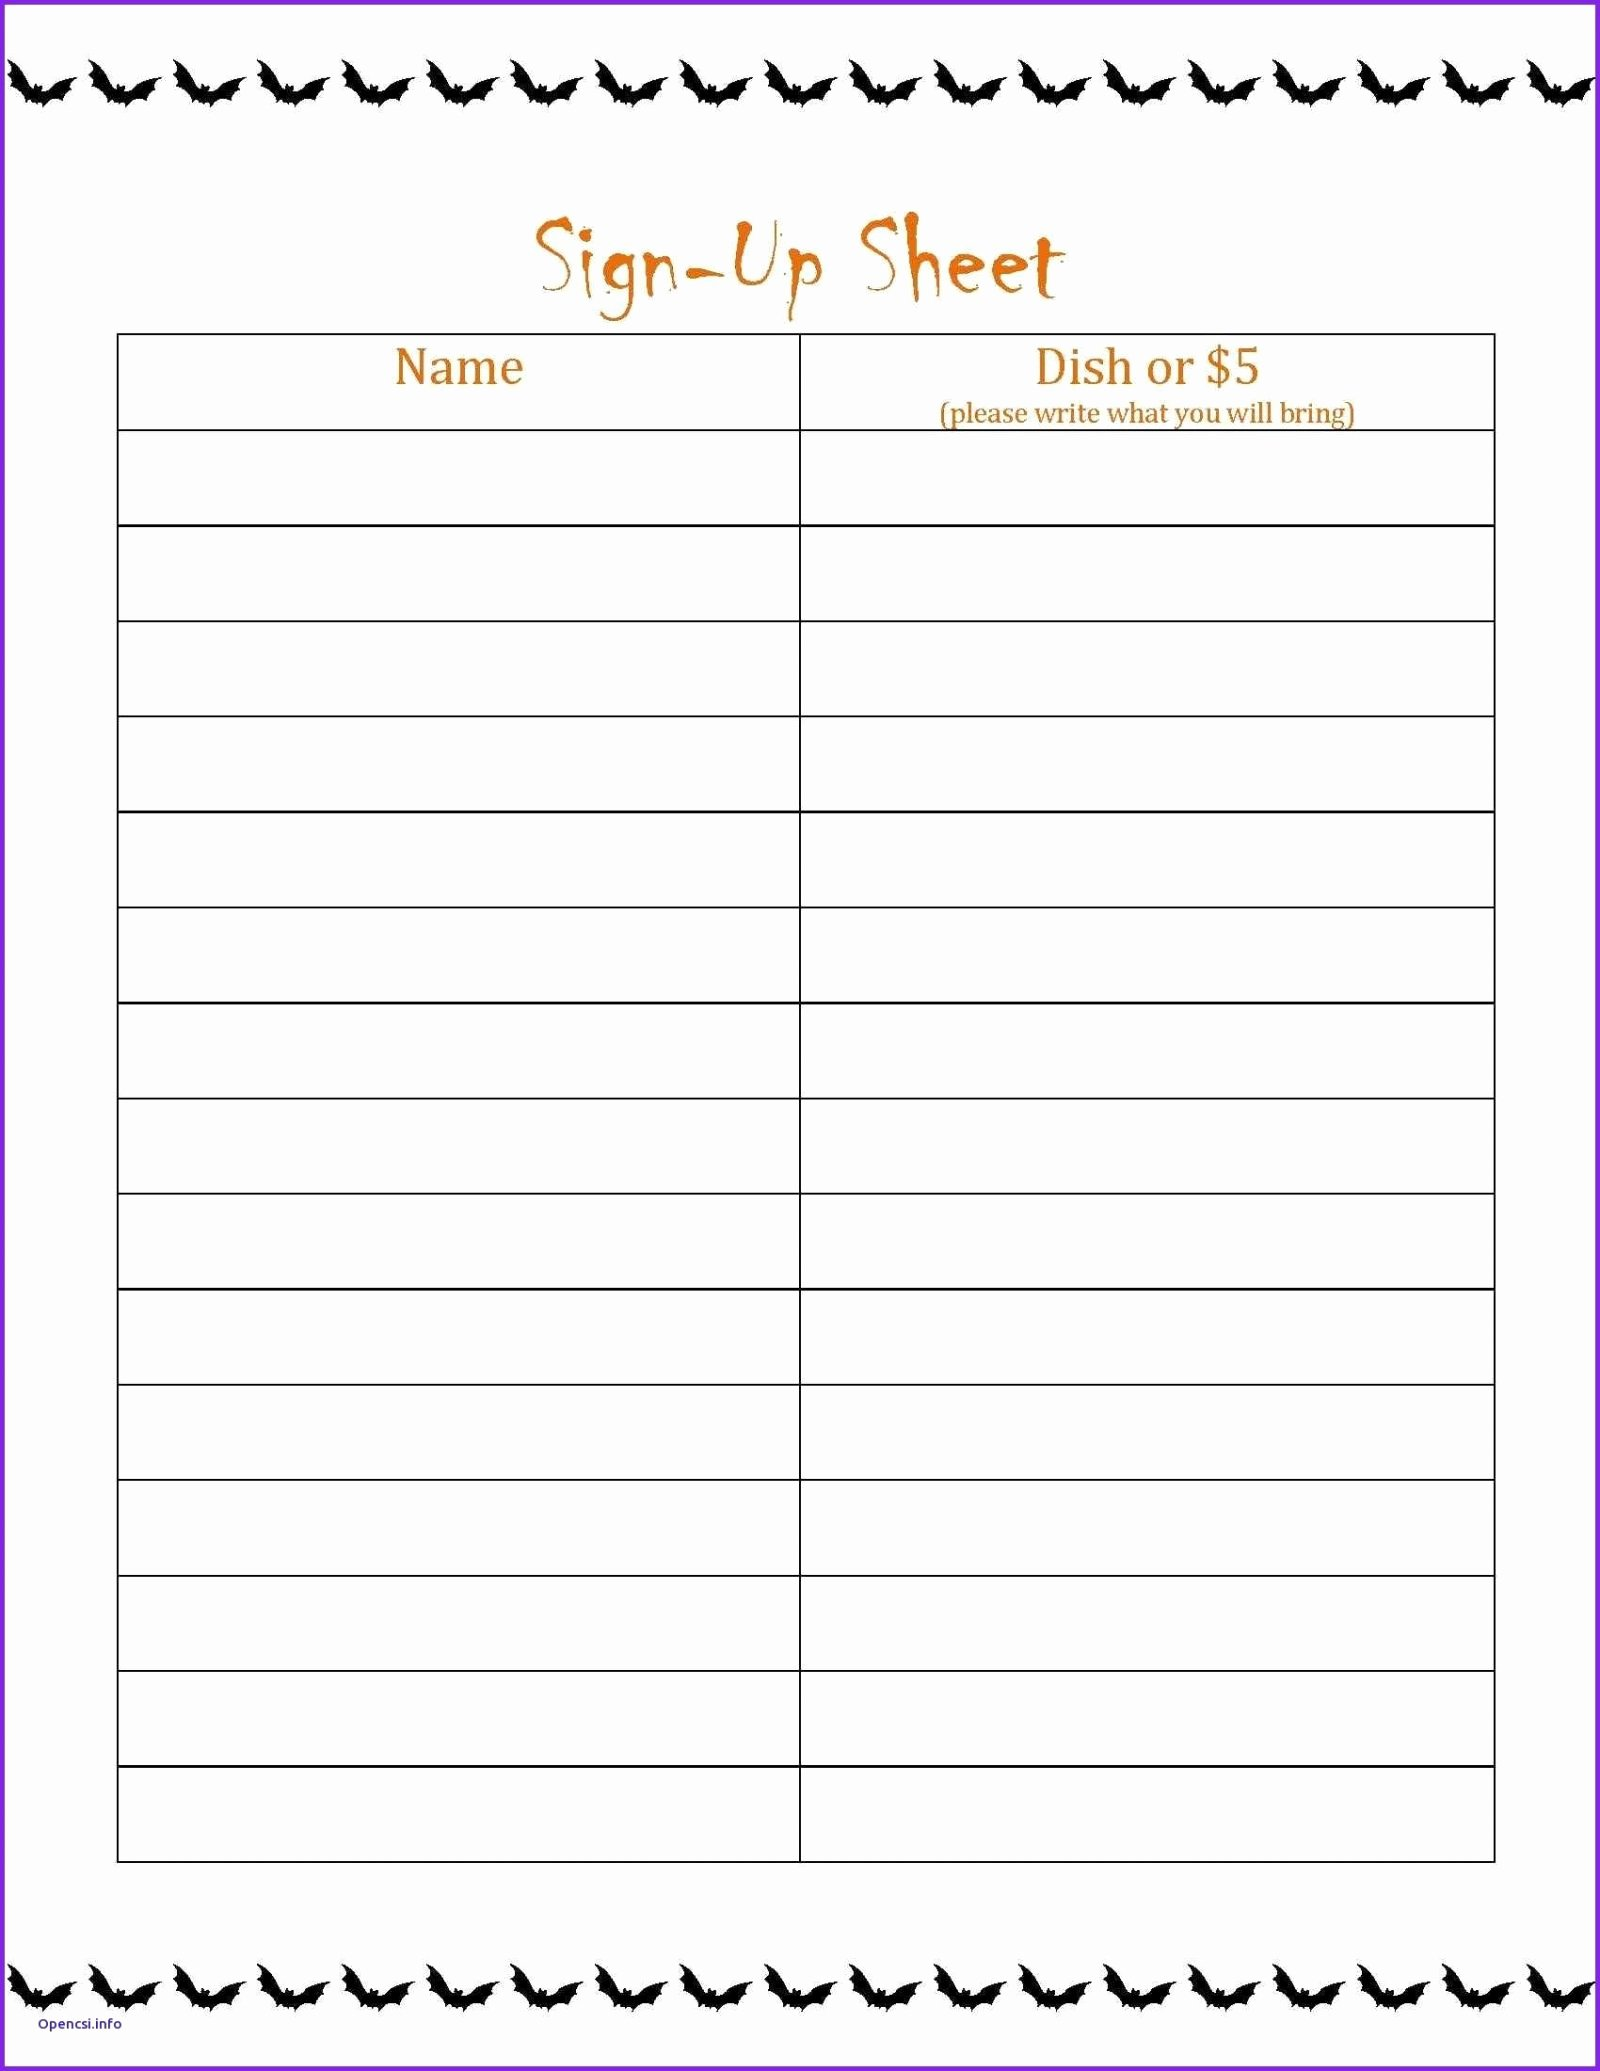 Potluck Signup Sheet Template Excel Best Of Sheet Potluck Signup Templated Karaoke Sign Up Taco Bar